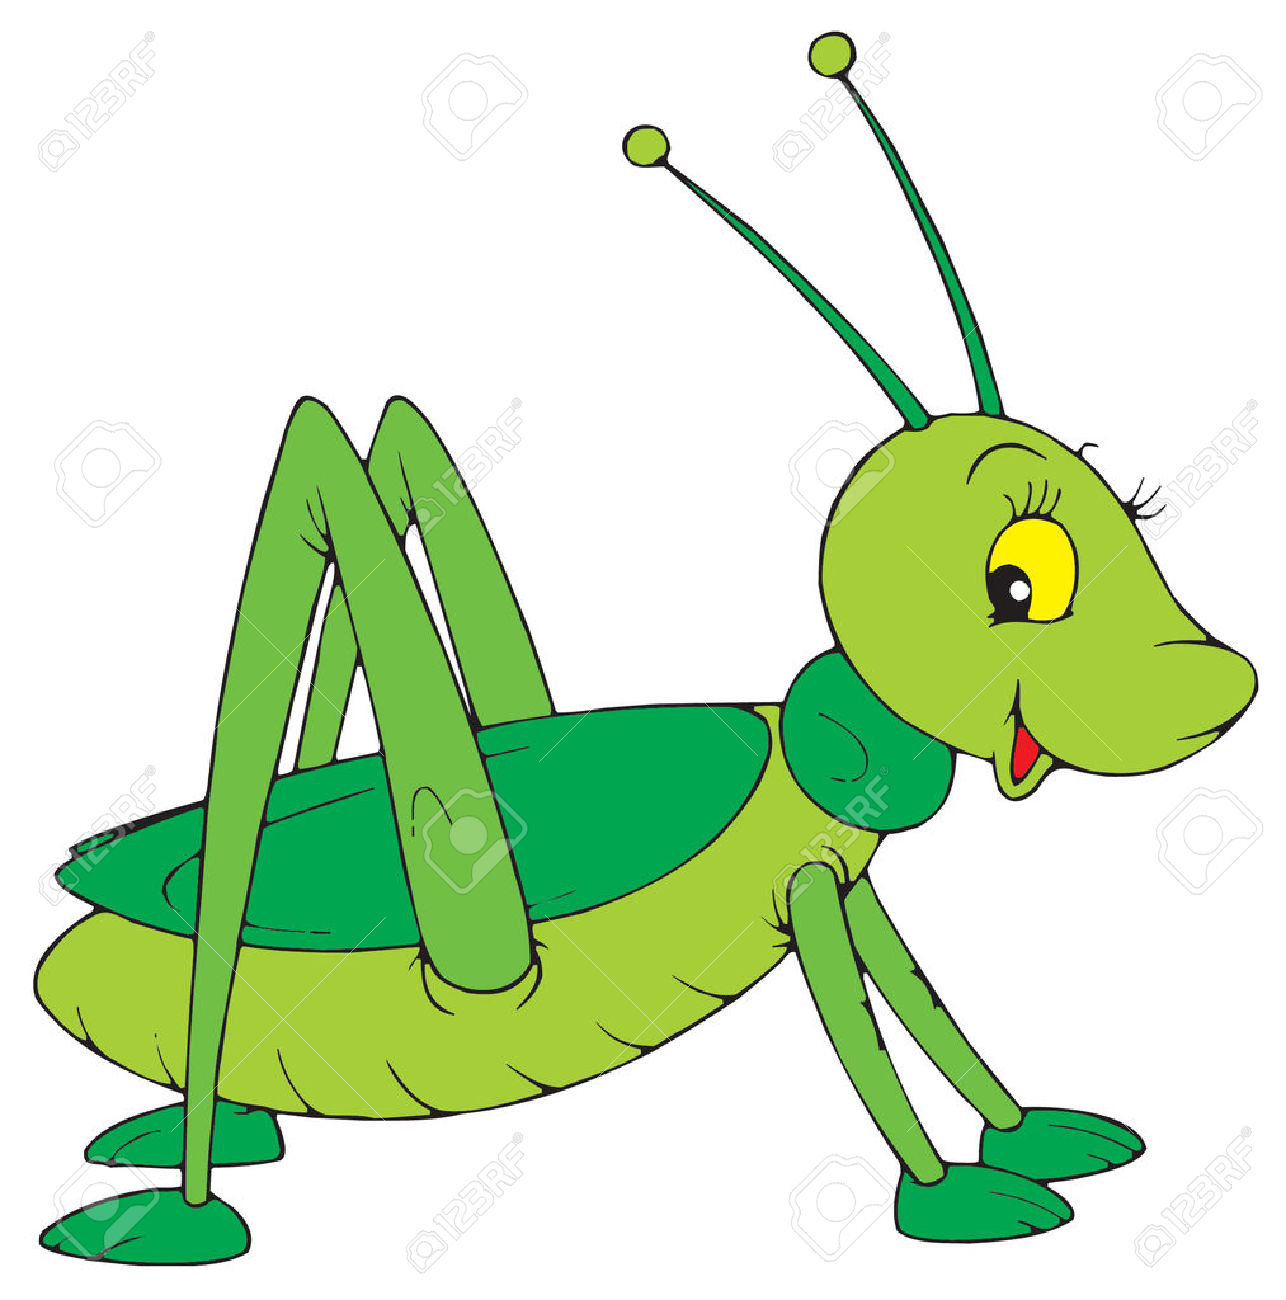 1286x1300 Cartoon Cricket Insect Clipart